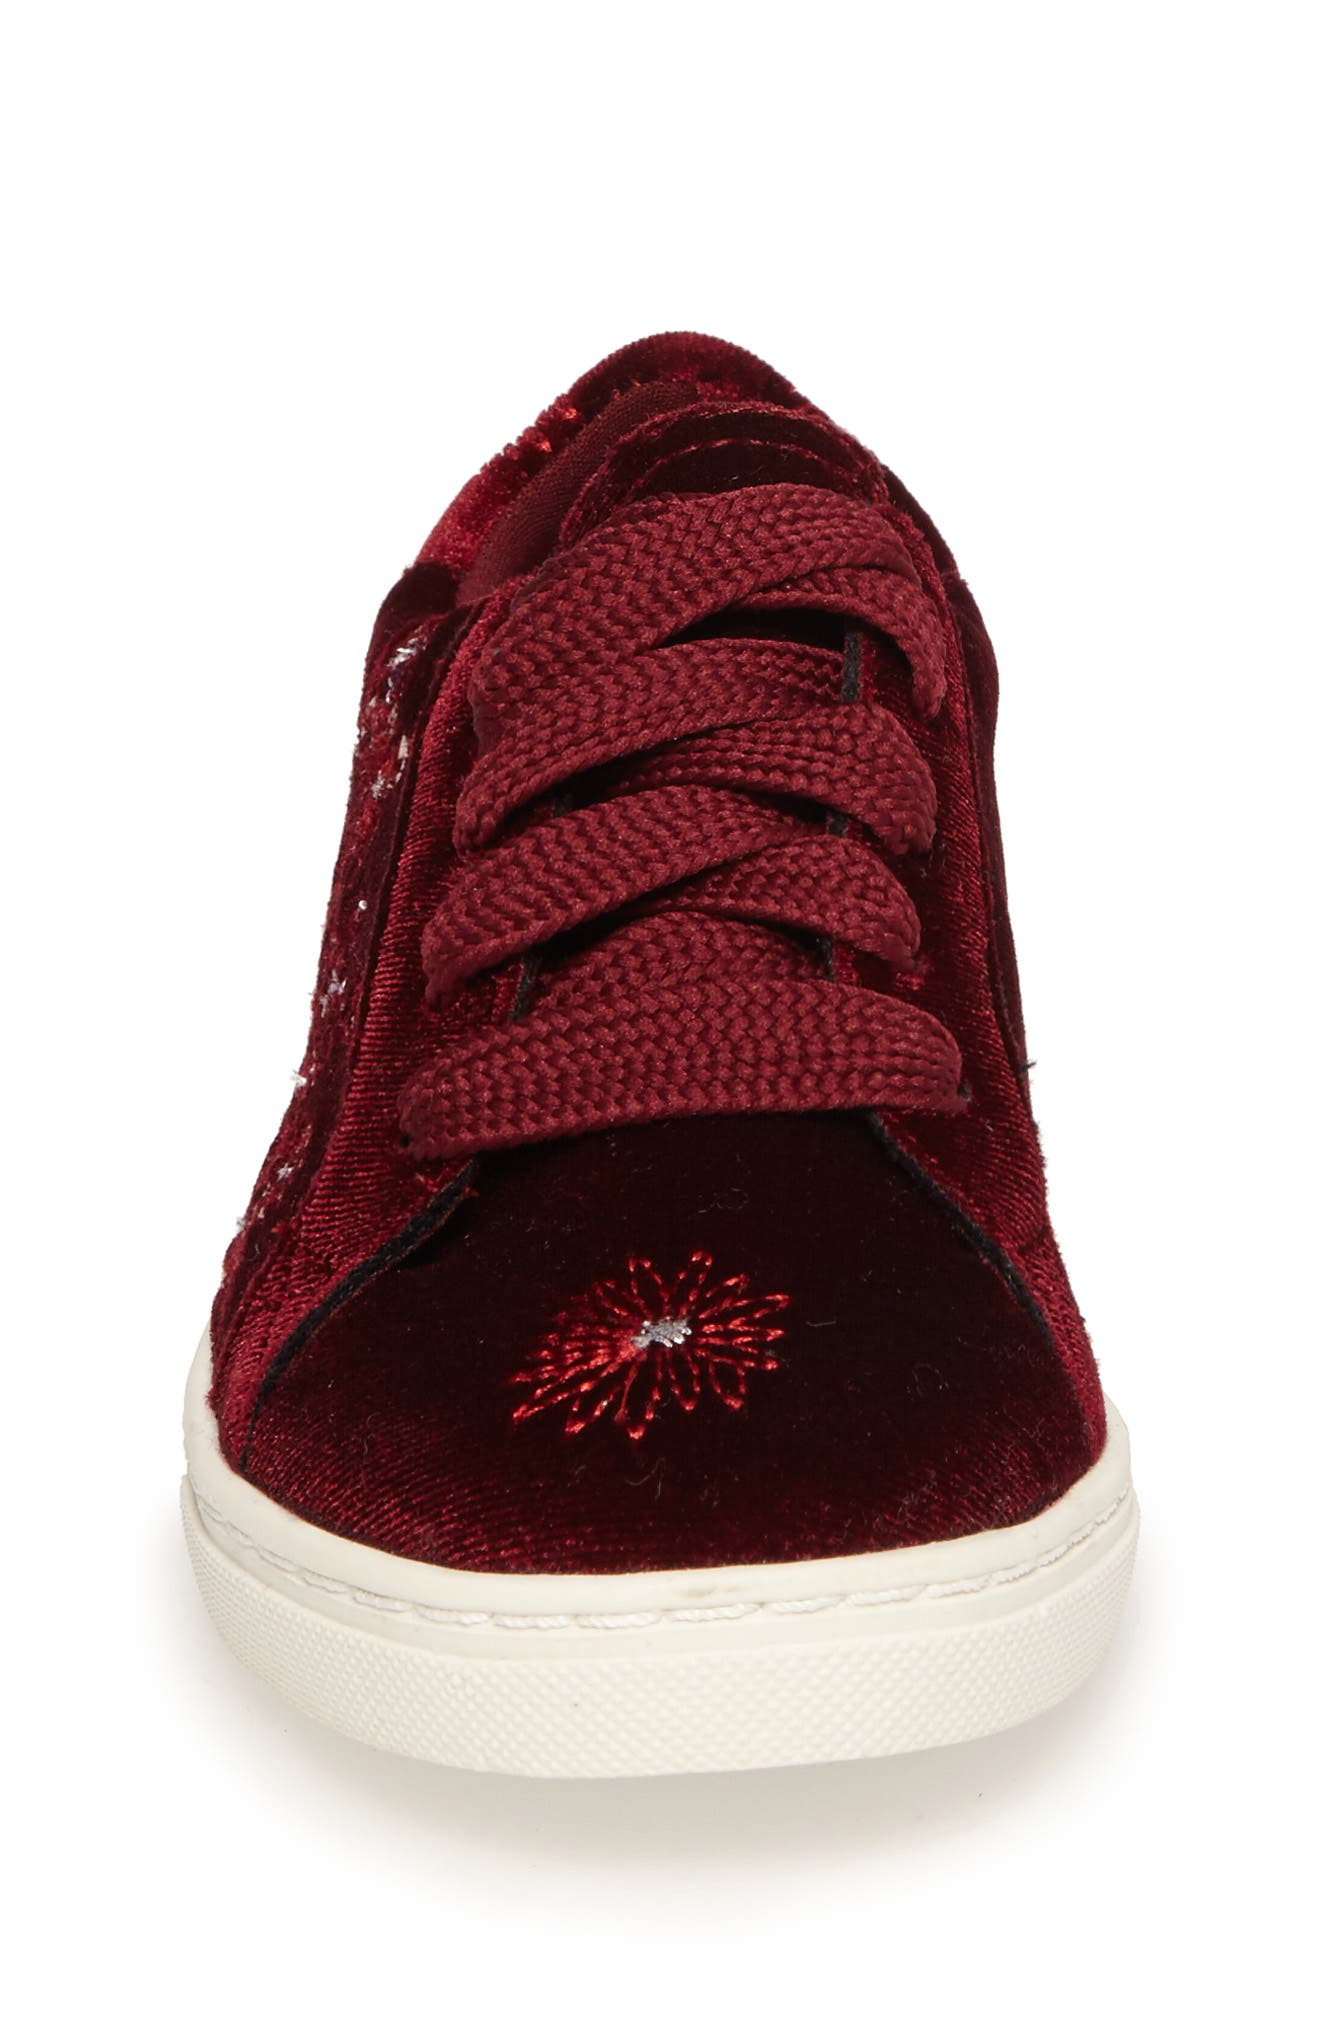 Zolly Floral Embroidered Sneaker,                             Alternate thumbnail 4, color,